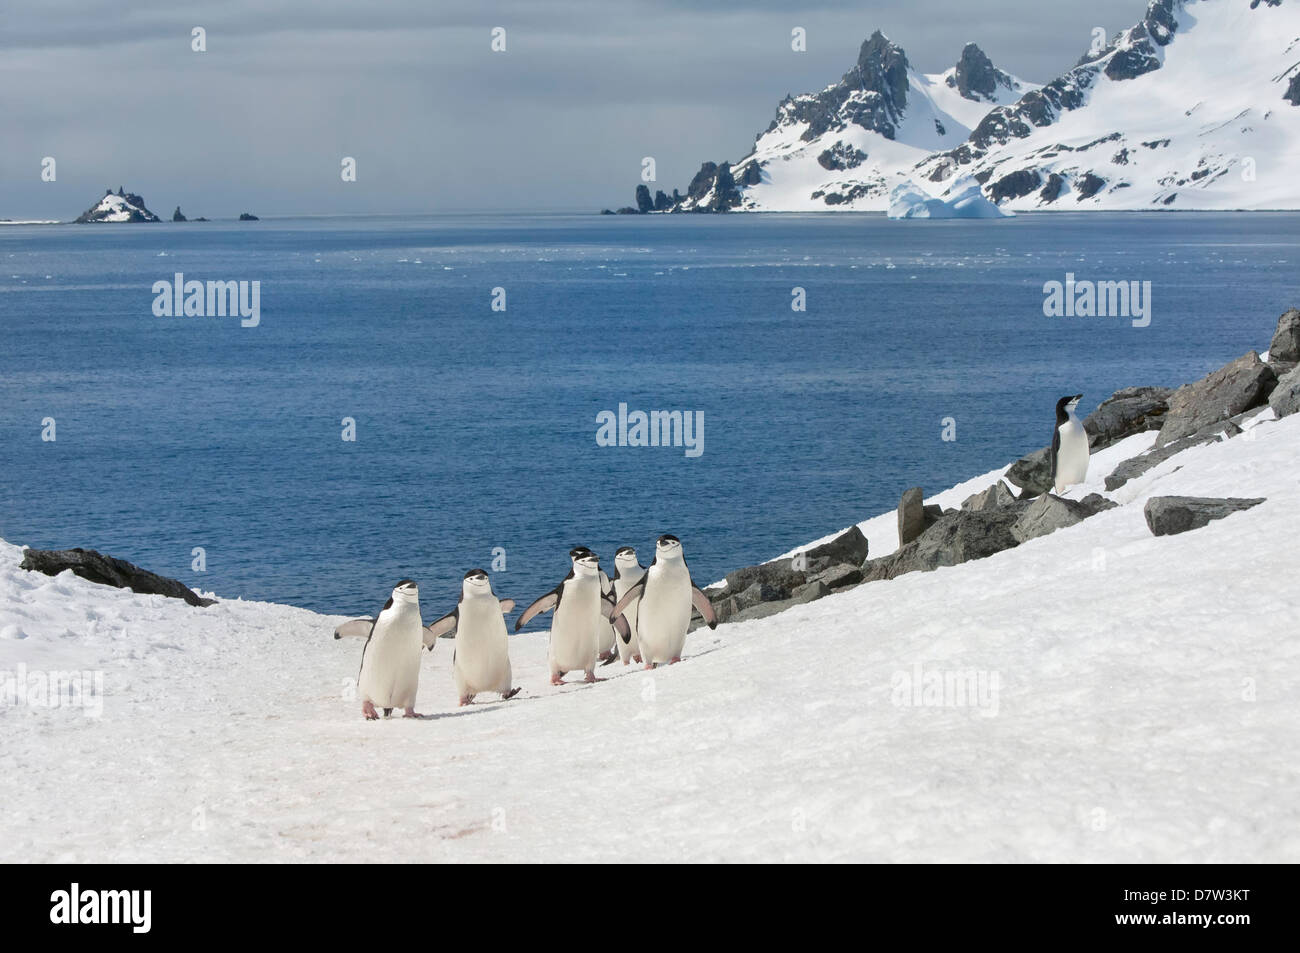 Chinstrap penguins walking up a glacial ice cap, Half Moon Island, South Shetland Island, Antarctic Peninsula, Antarctica - Stock Image